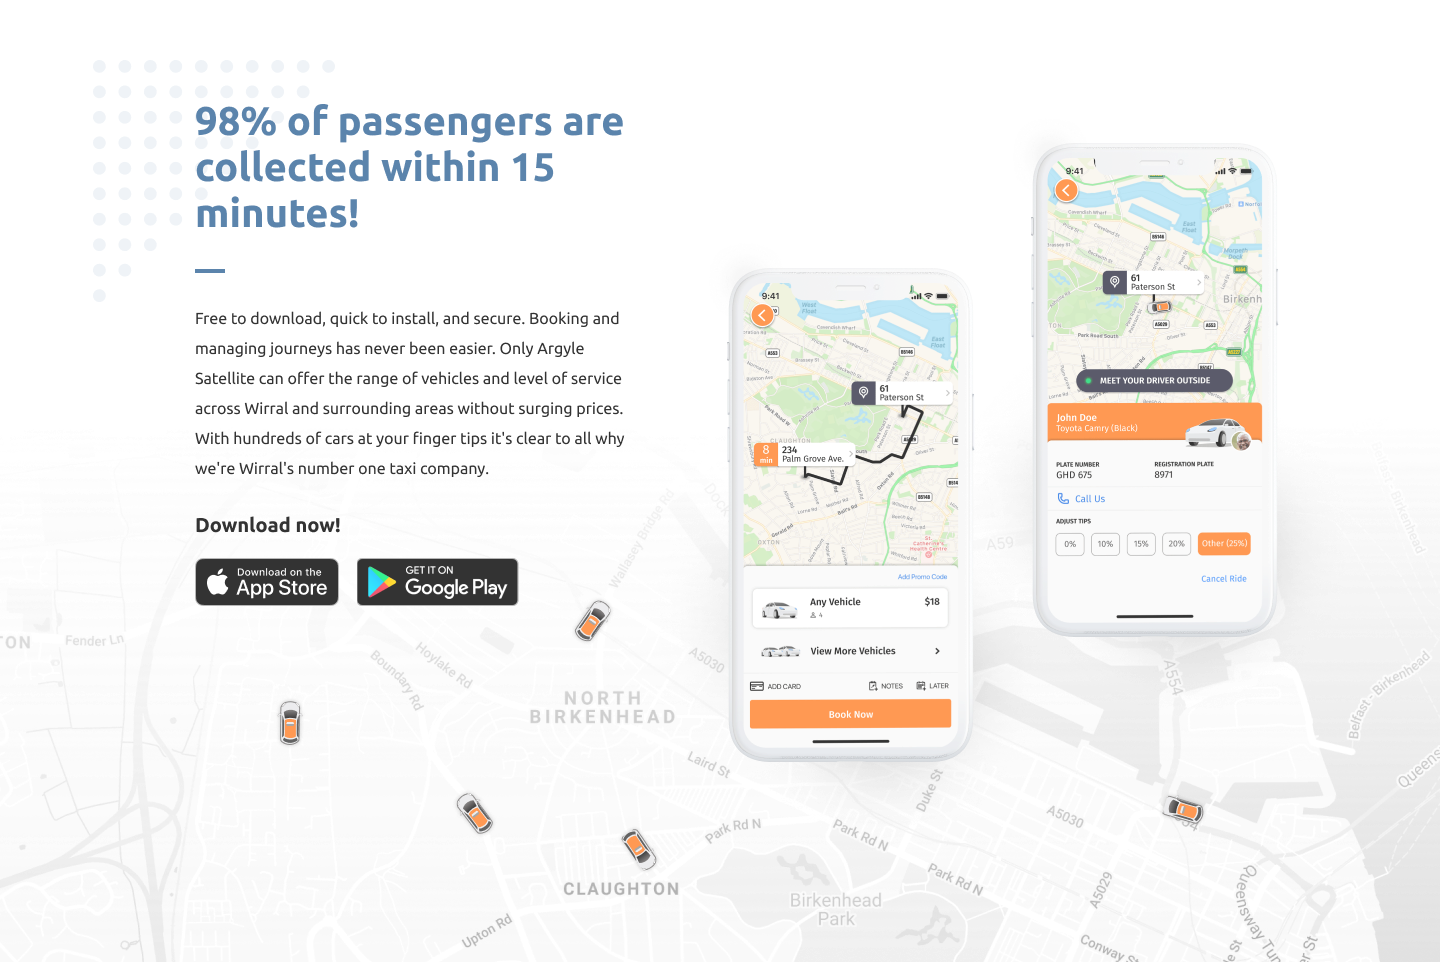 Argyle Satellite Taxis App, Wirral Private hire car with taxi door sign. Operating 24 hours a day, 7 days a week across Wirral, Liverpool, Cheshire West and Chester 0151 201 0001 or 0151 201 1111